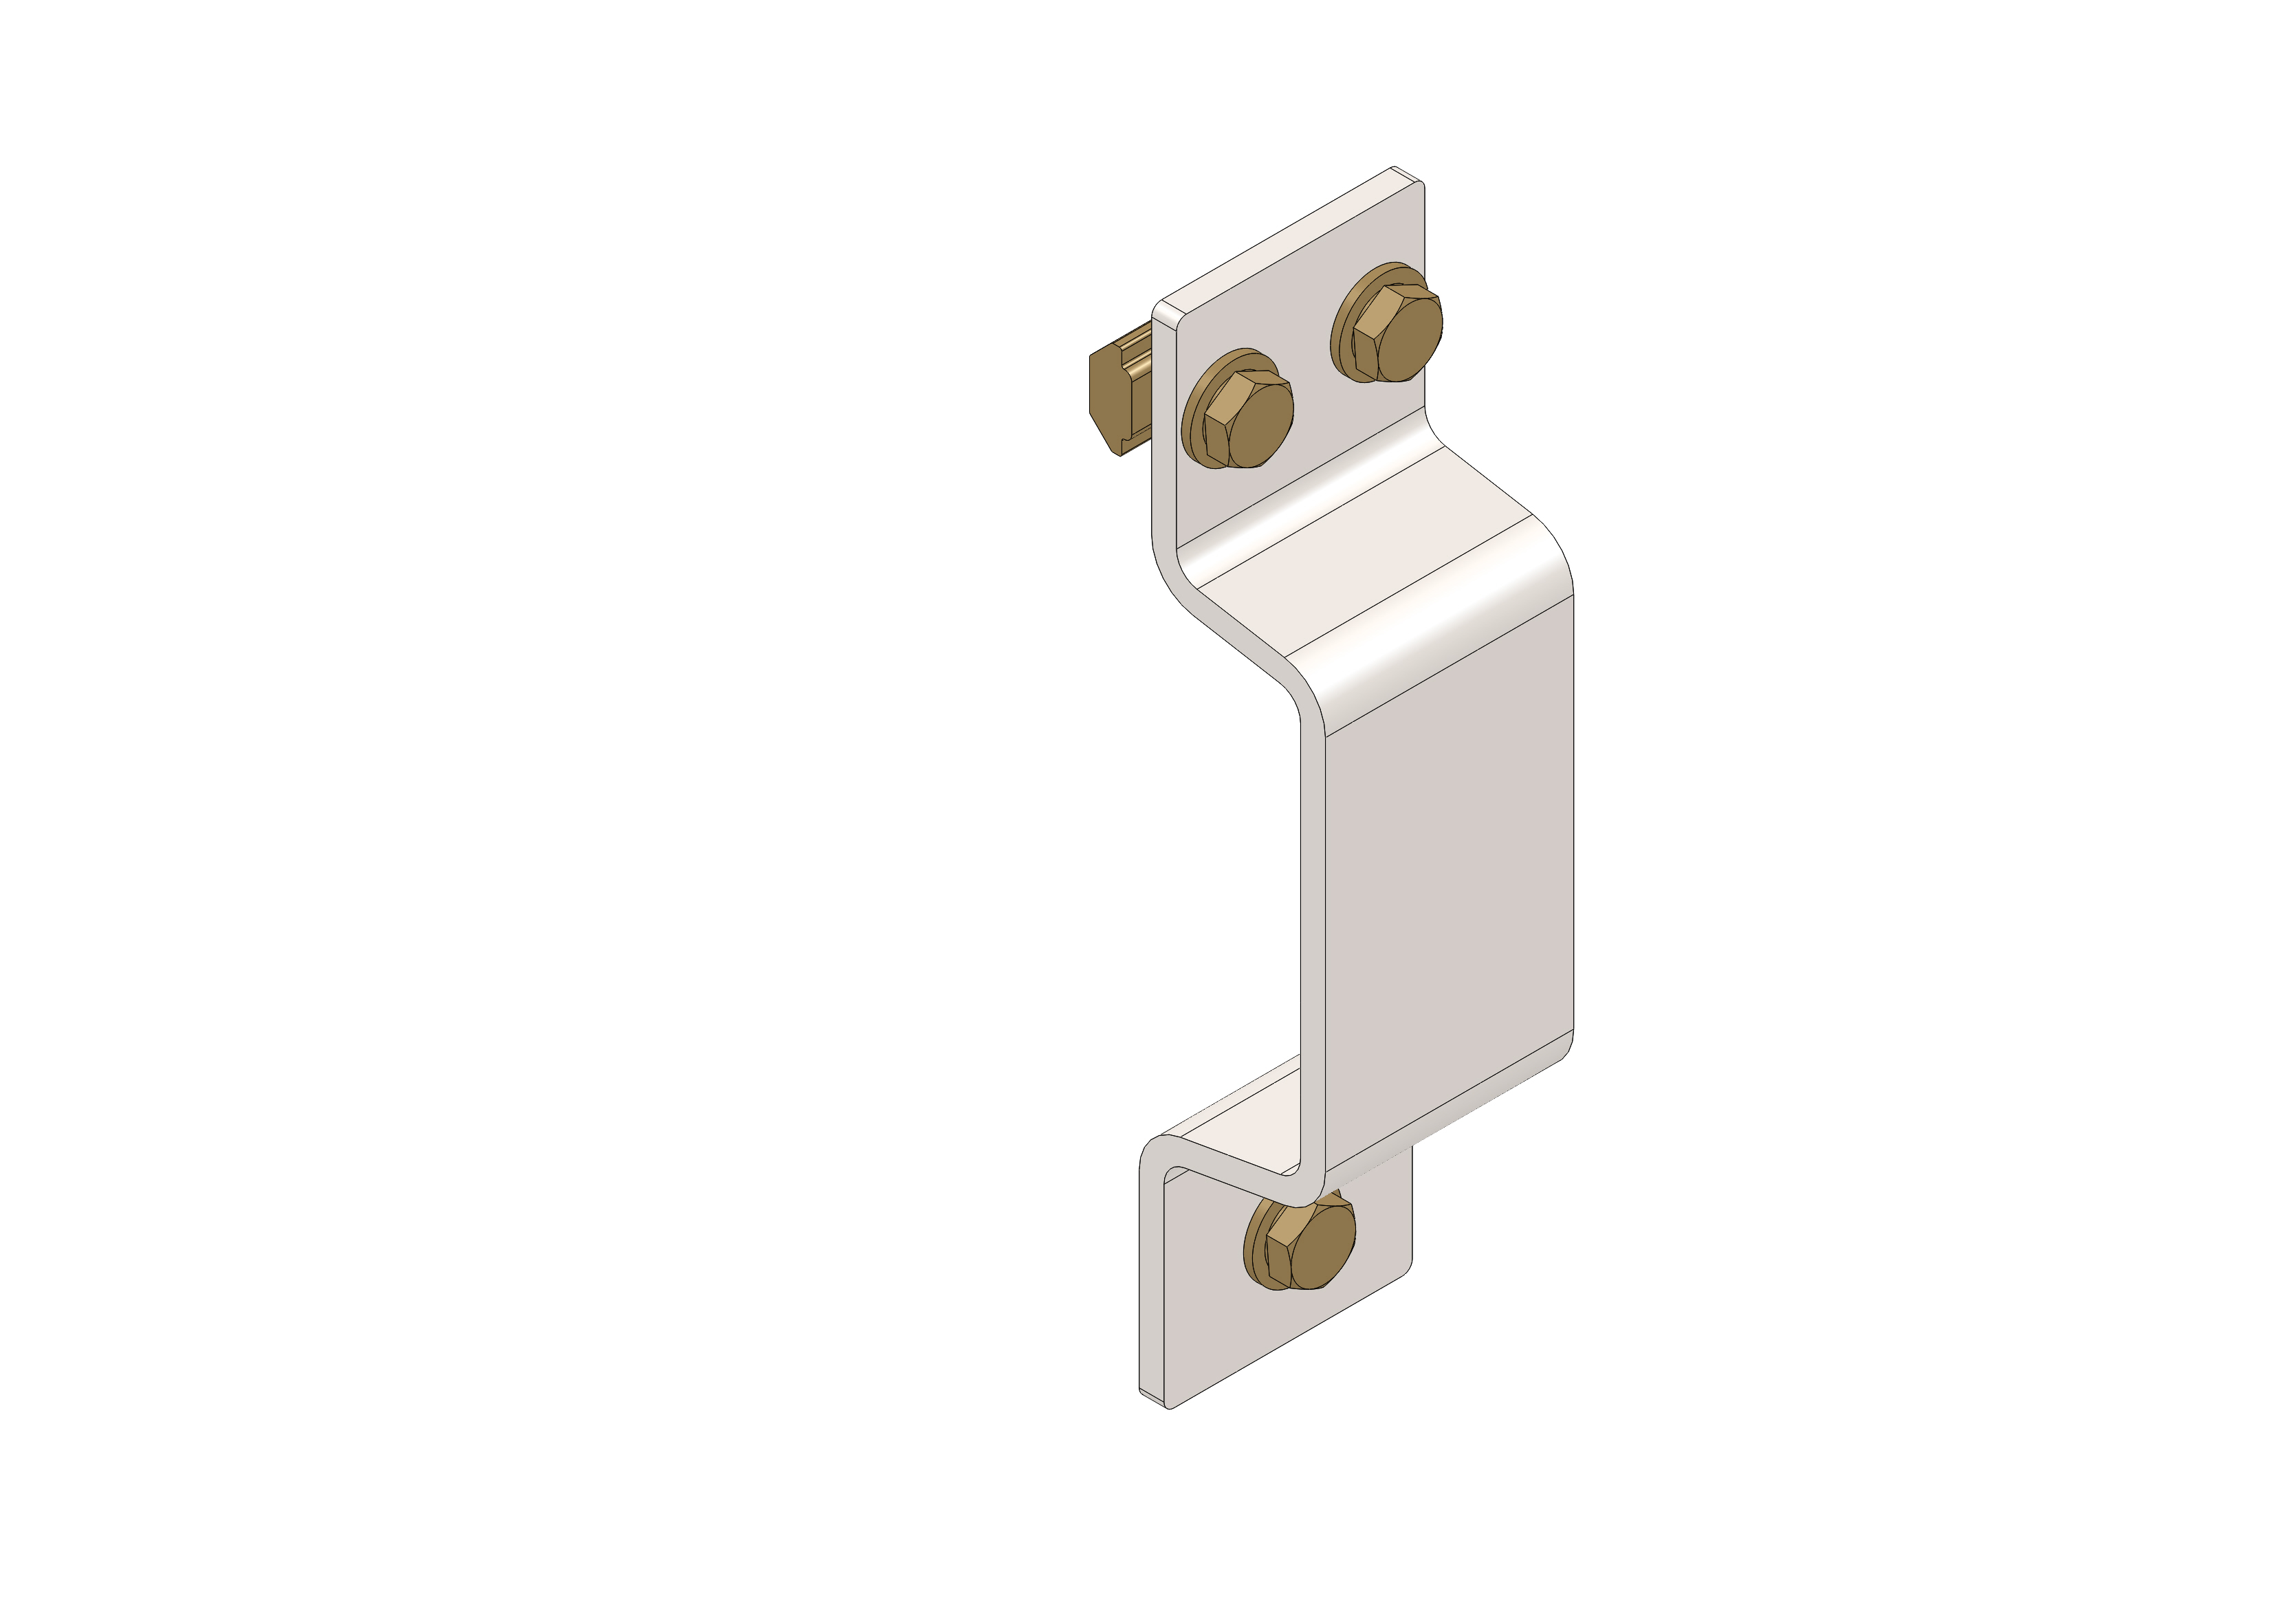 Support bracket for chassis  P50-L kit - 55